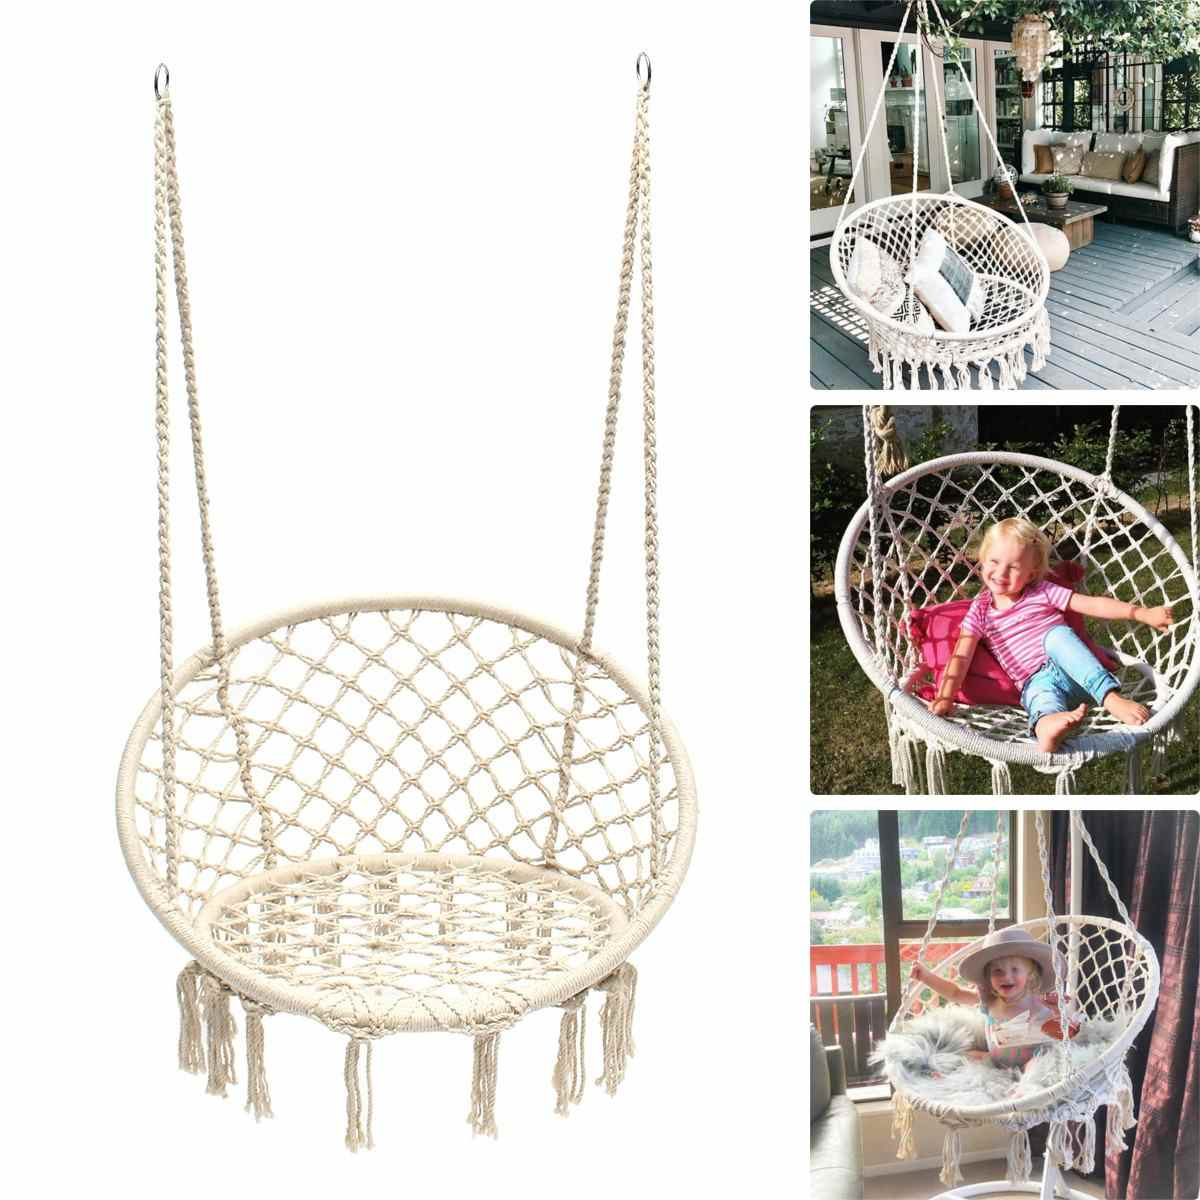 Cotton Rope Hammock Chair Swing For Kids Hand Knitting Macrame